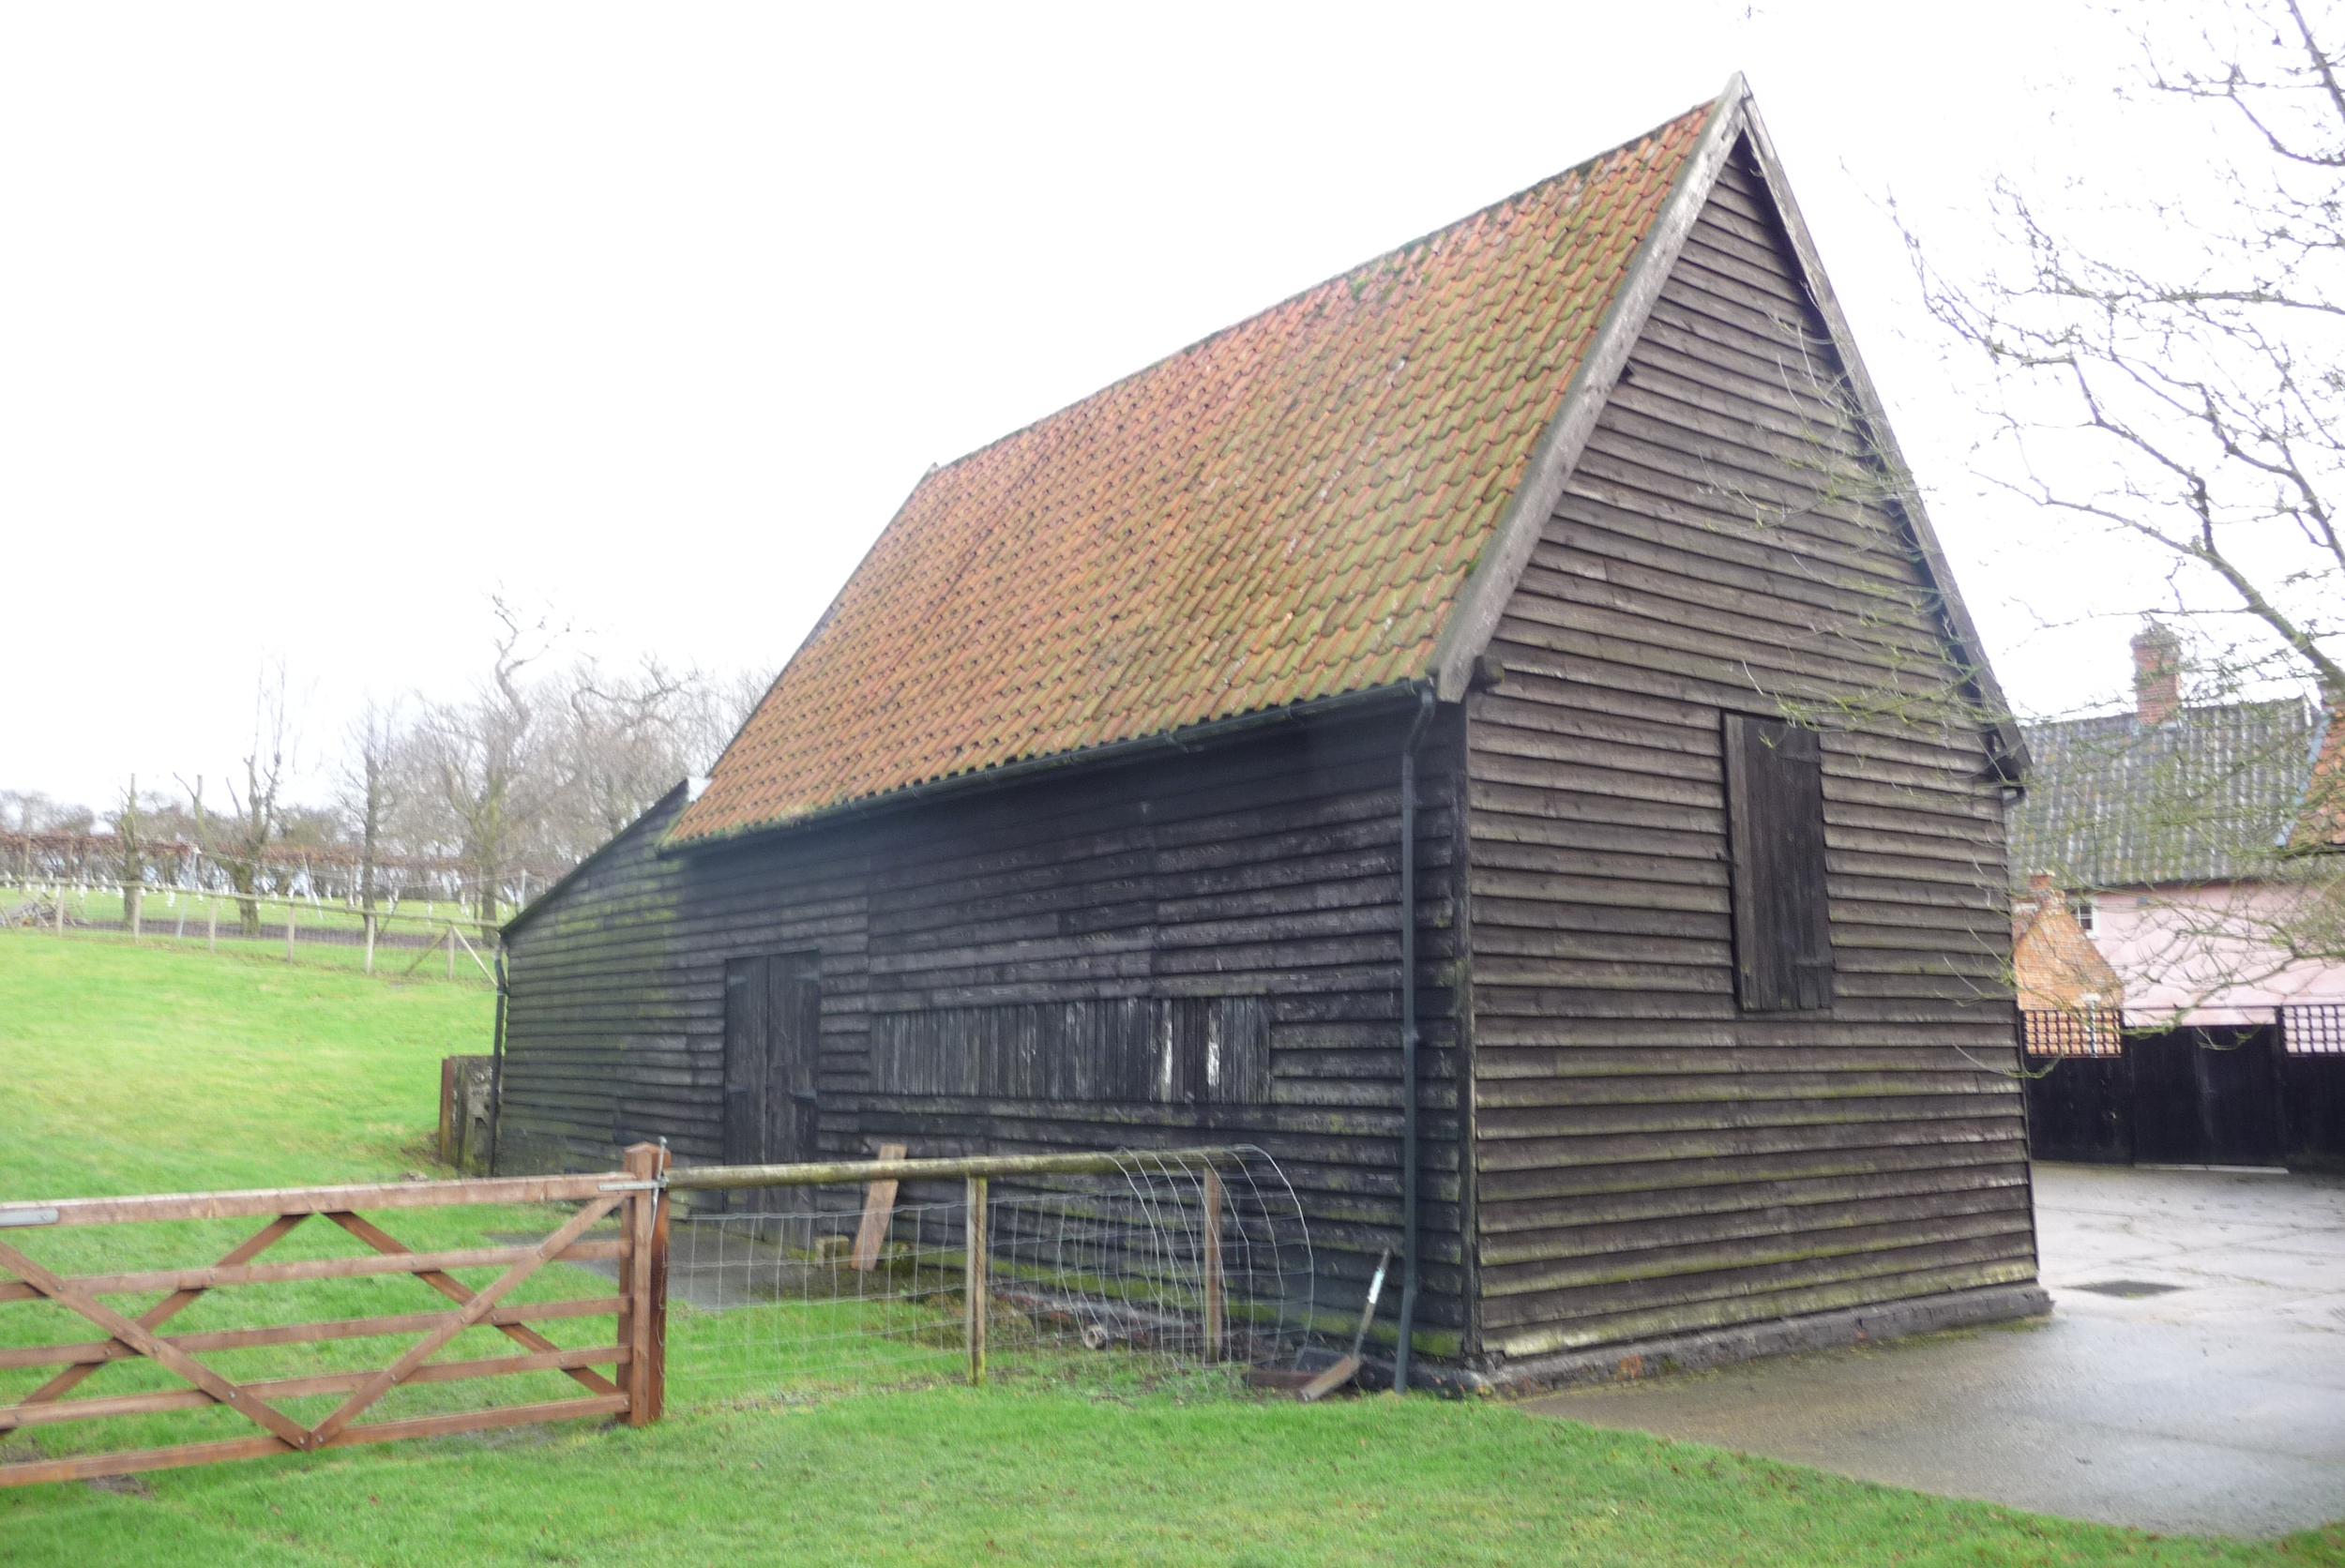 The existing barn, prior to its conversion.